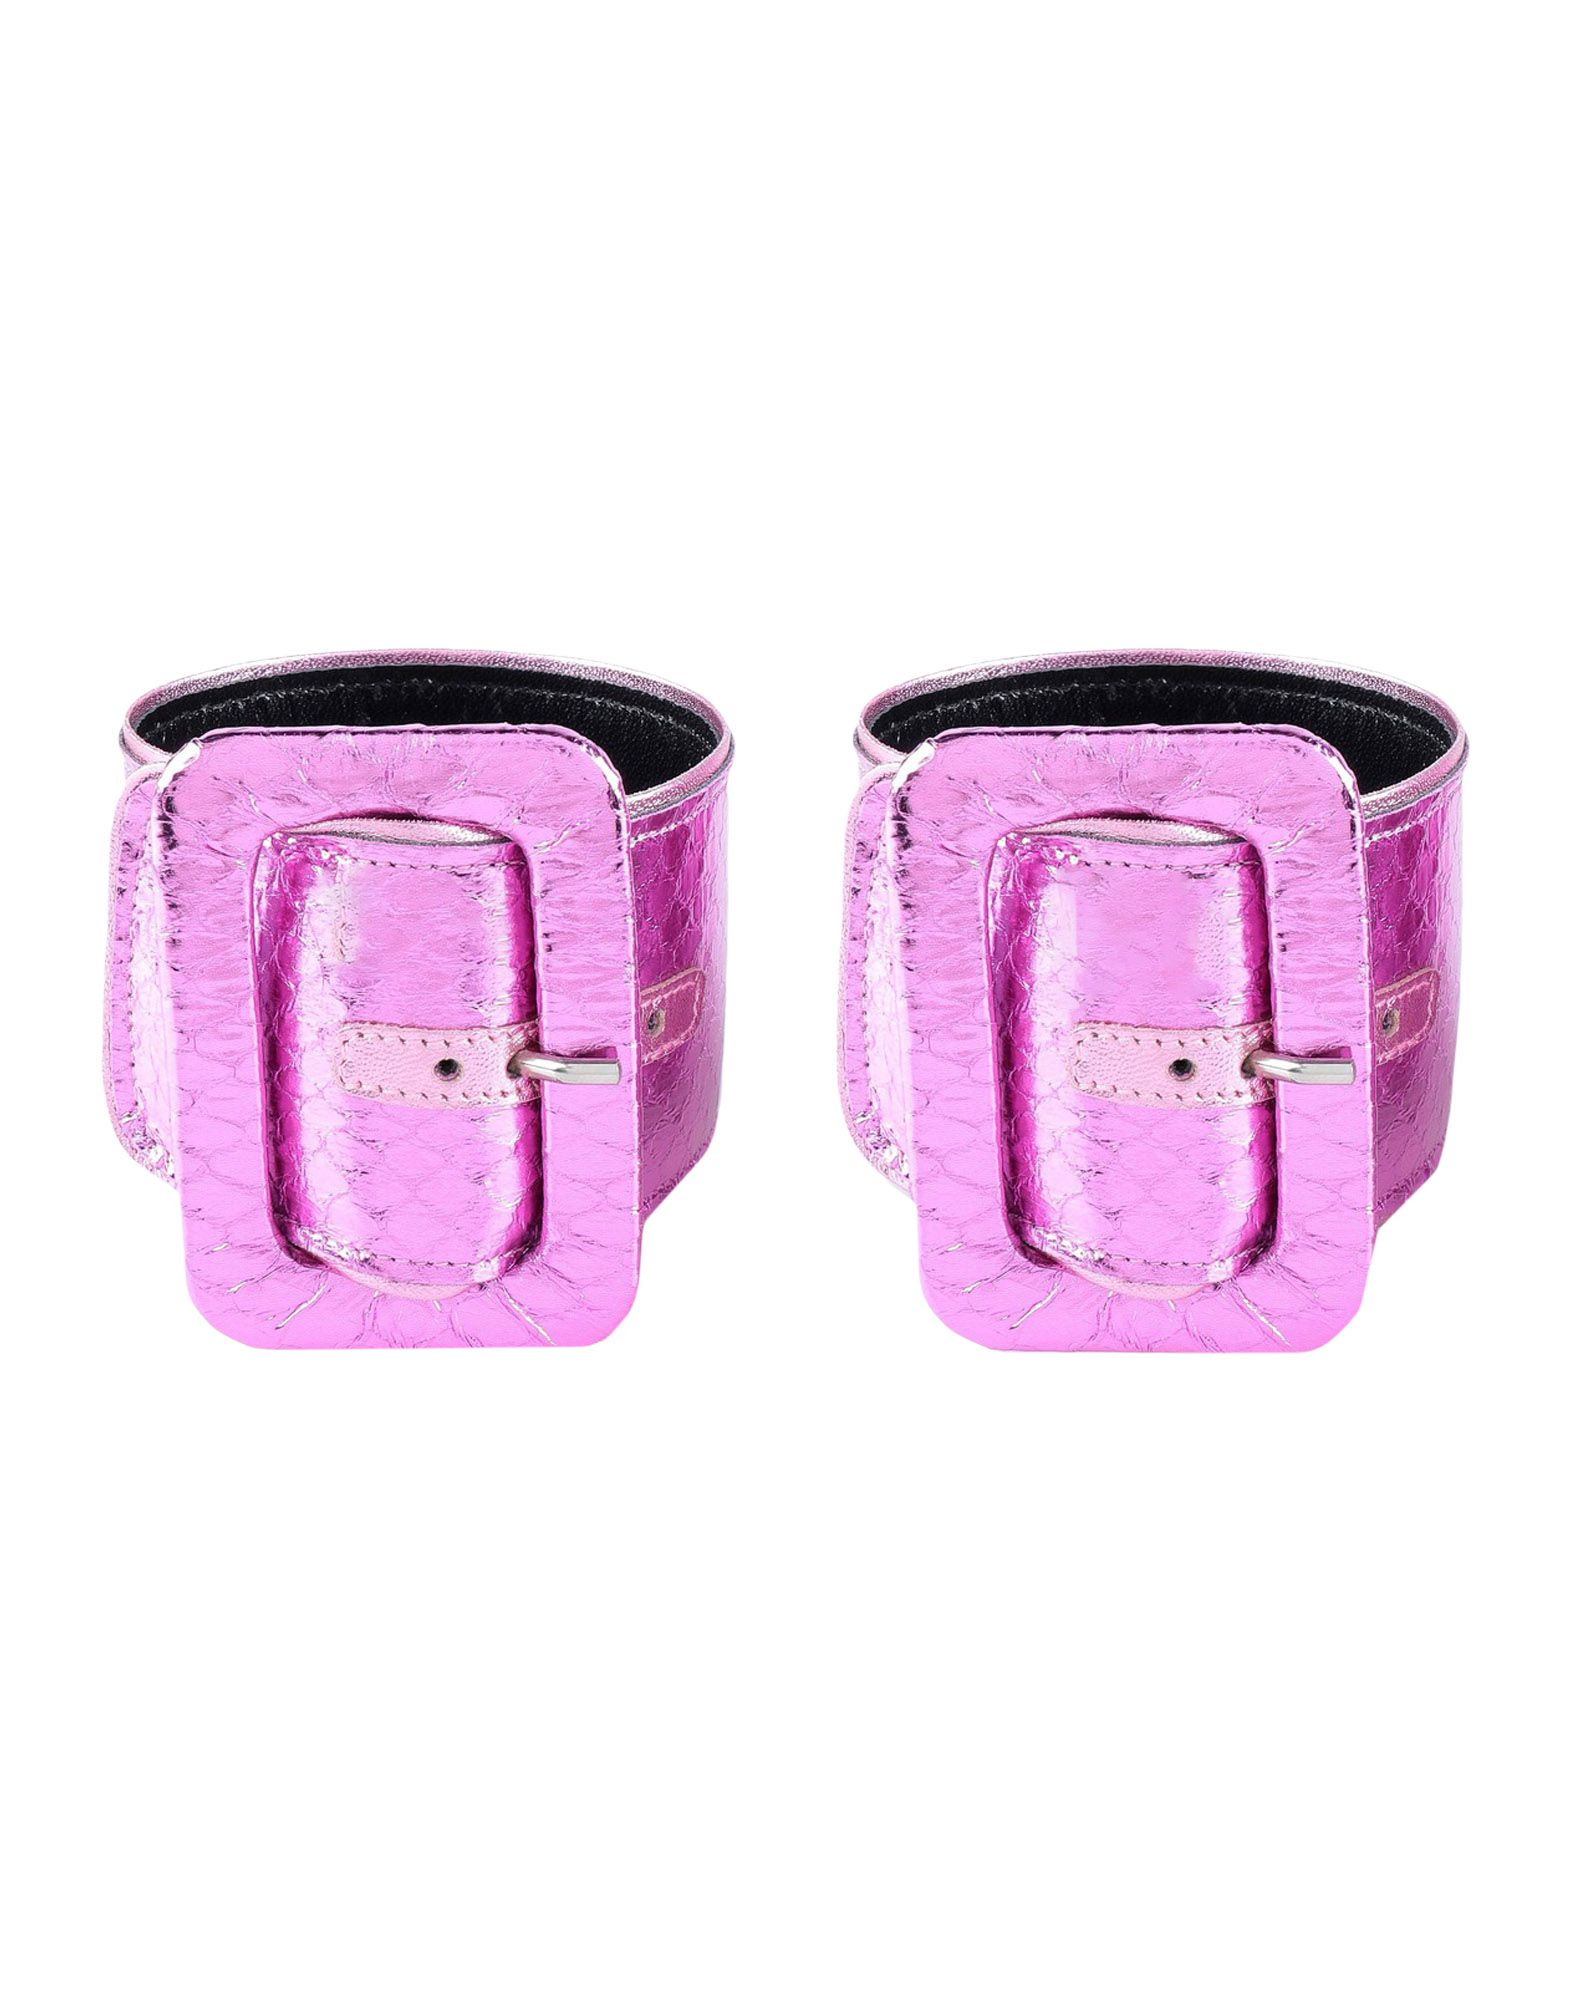 THE ATTICO Bracelets. faux leather, laminated effect, no appliqués, buckle, 2-piece set. Textile fibers